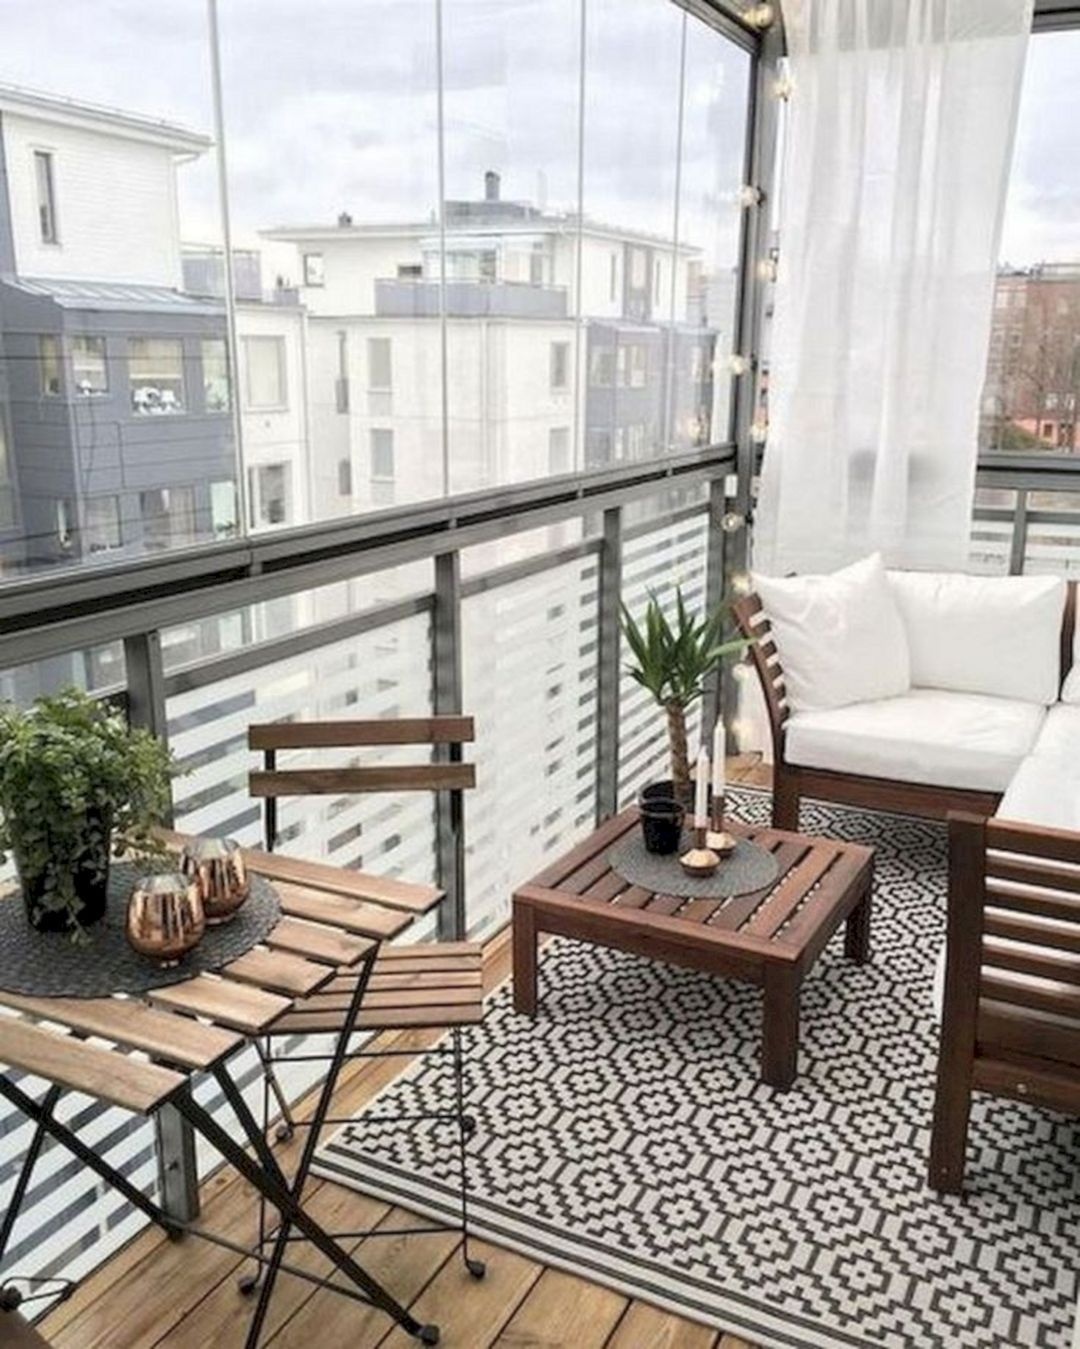 15 Awesome Small Apartment Balcony Ideas On A Budget In 2020 Apartment Balcony Decorating